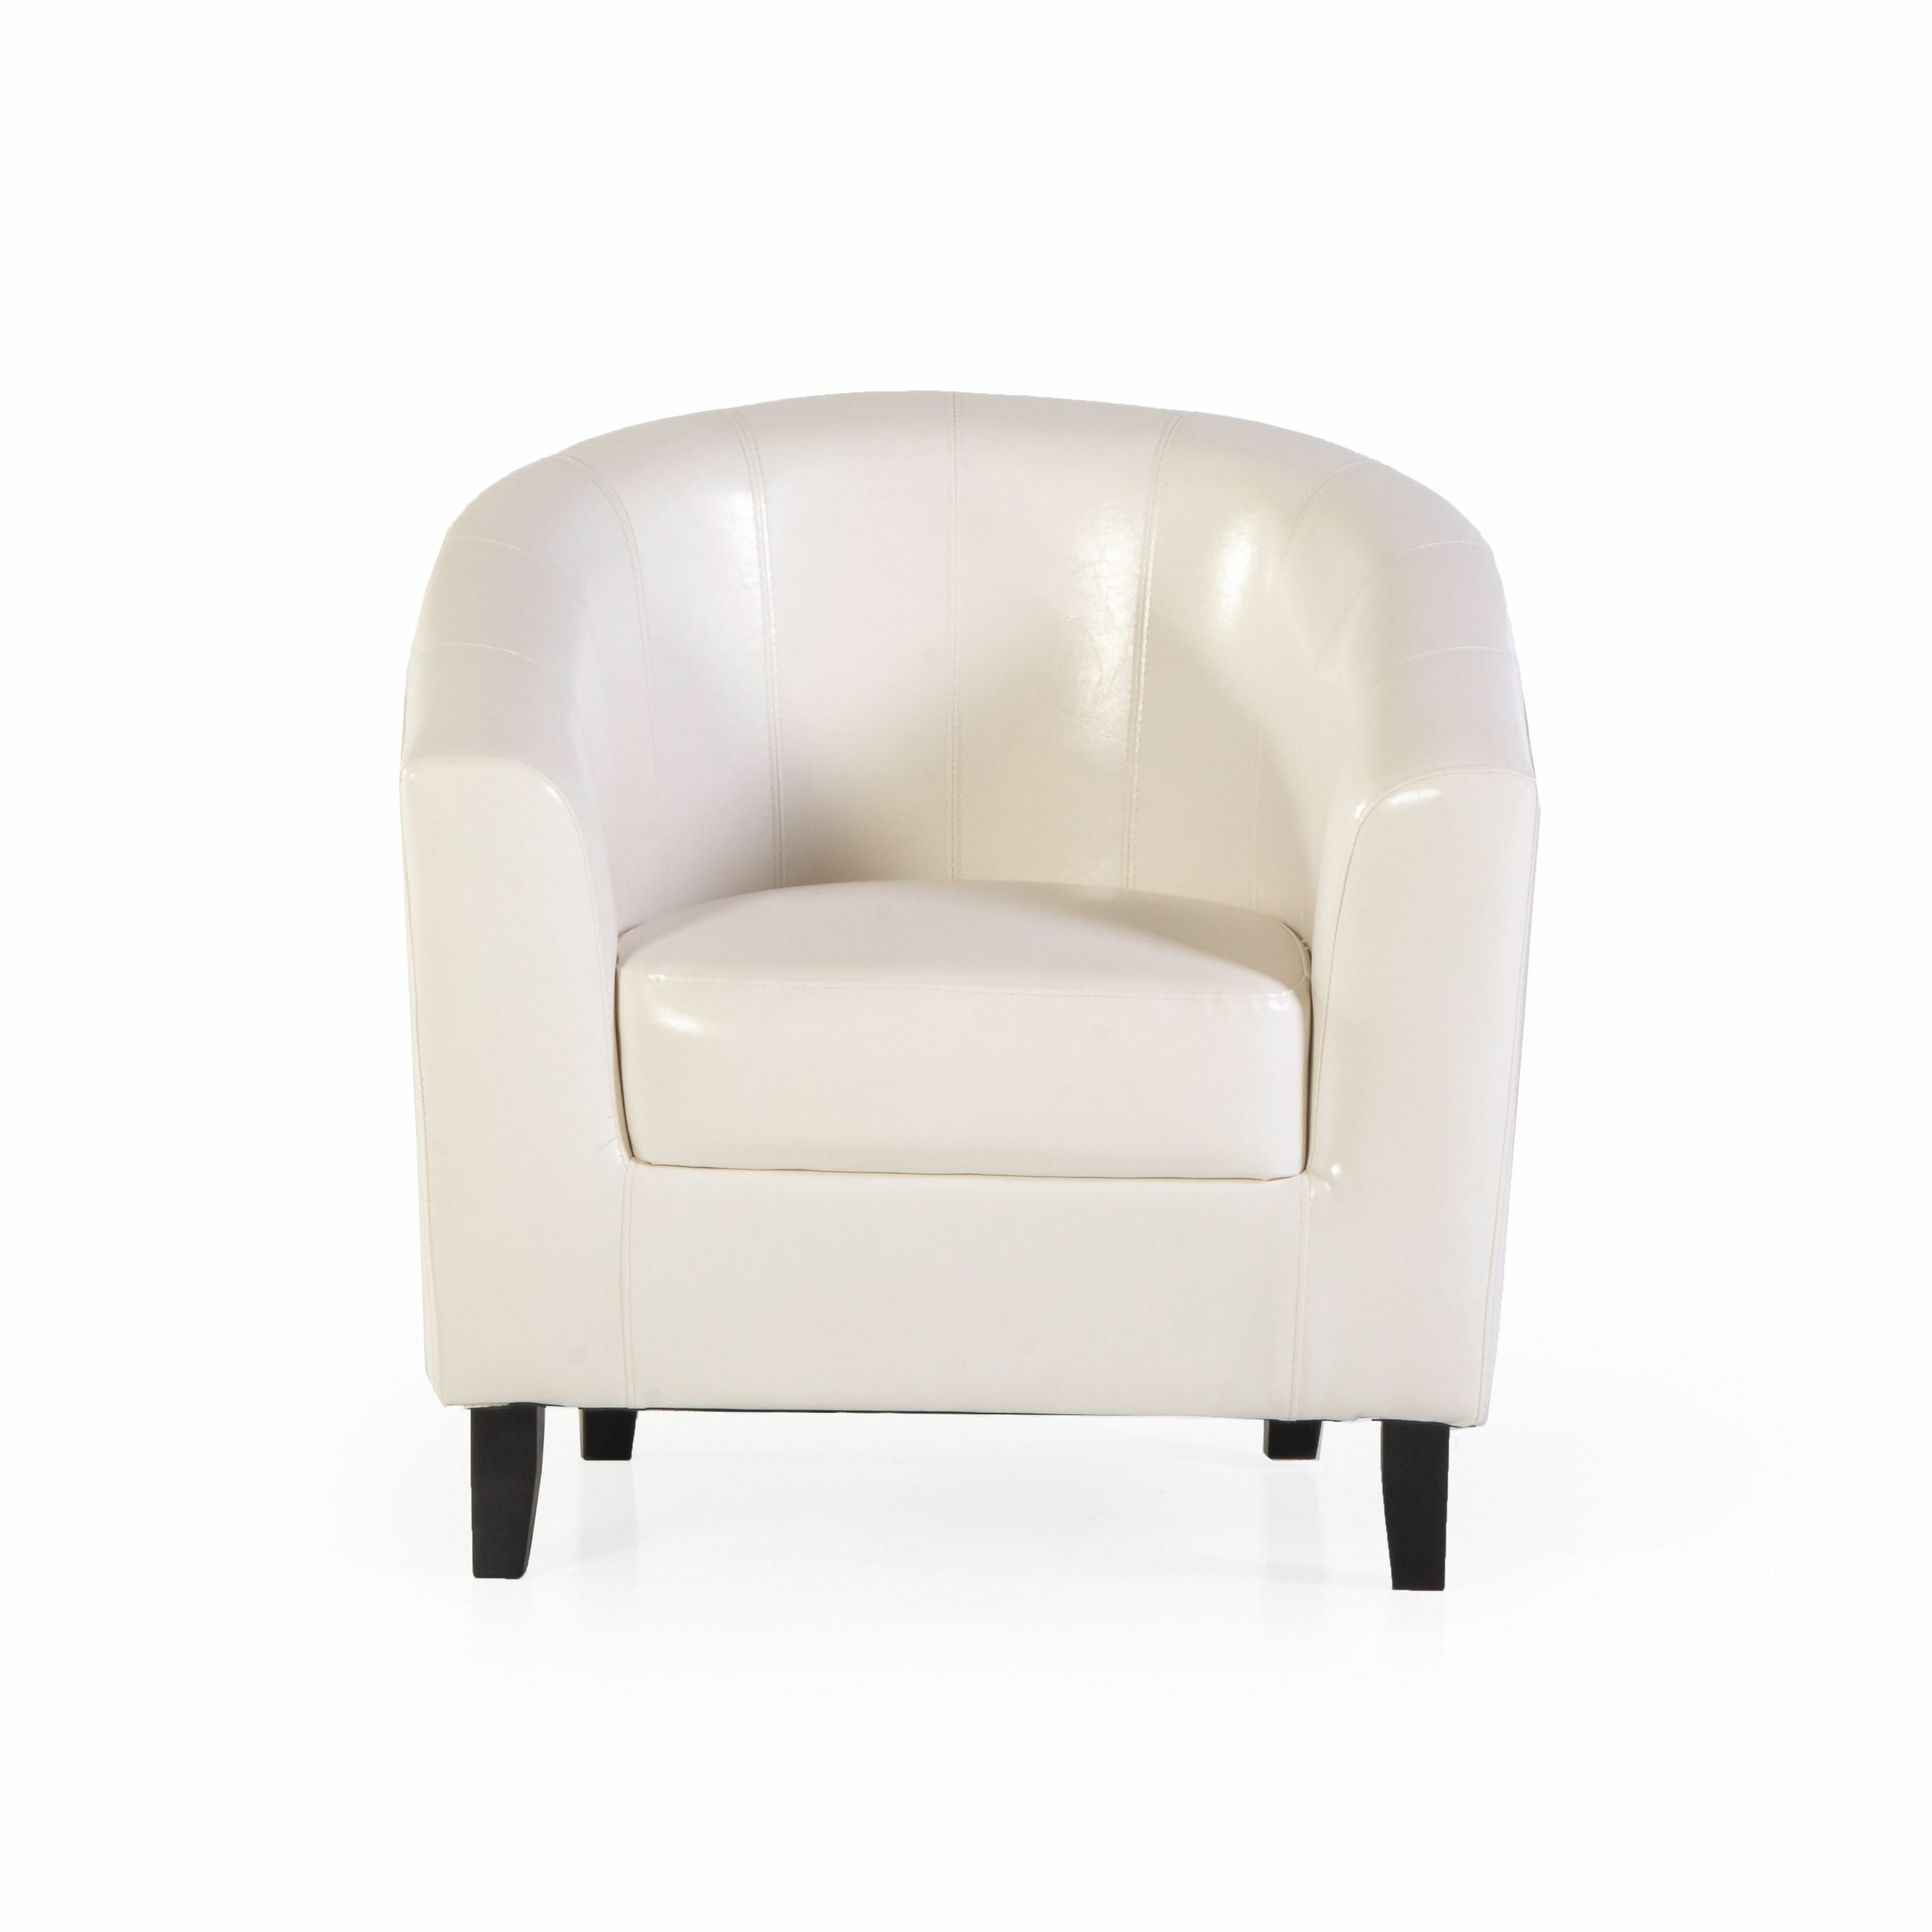 """Angadresma 27"""" W Faux Leather Barrel Chair Intended For Liam Faux Leather Barrel Chairs (View 7 of 15)"""